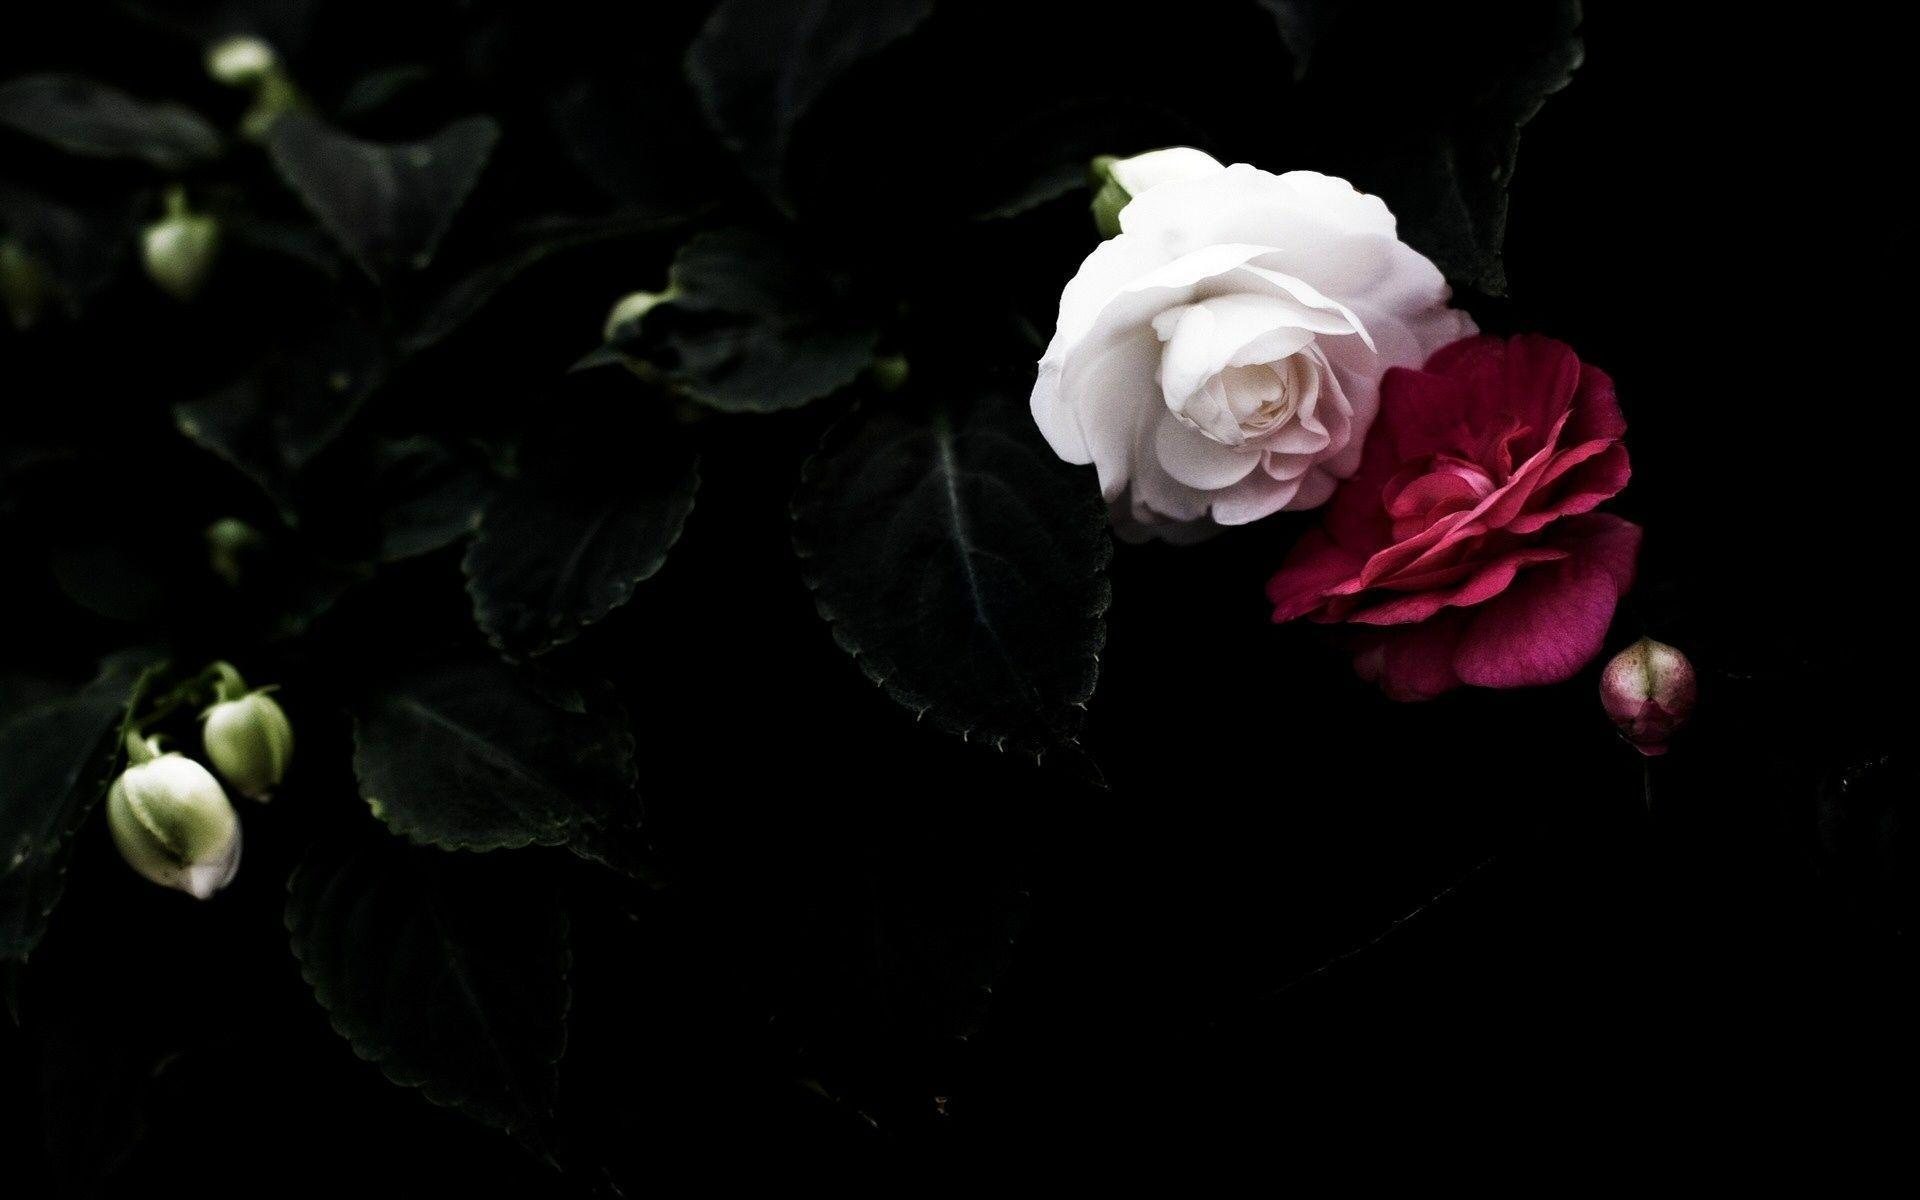 white rose backgrounds wallpapers - photo #15